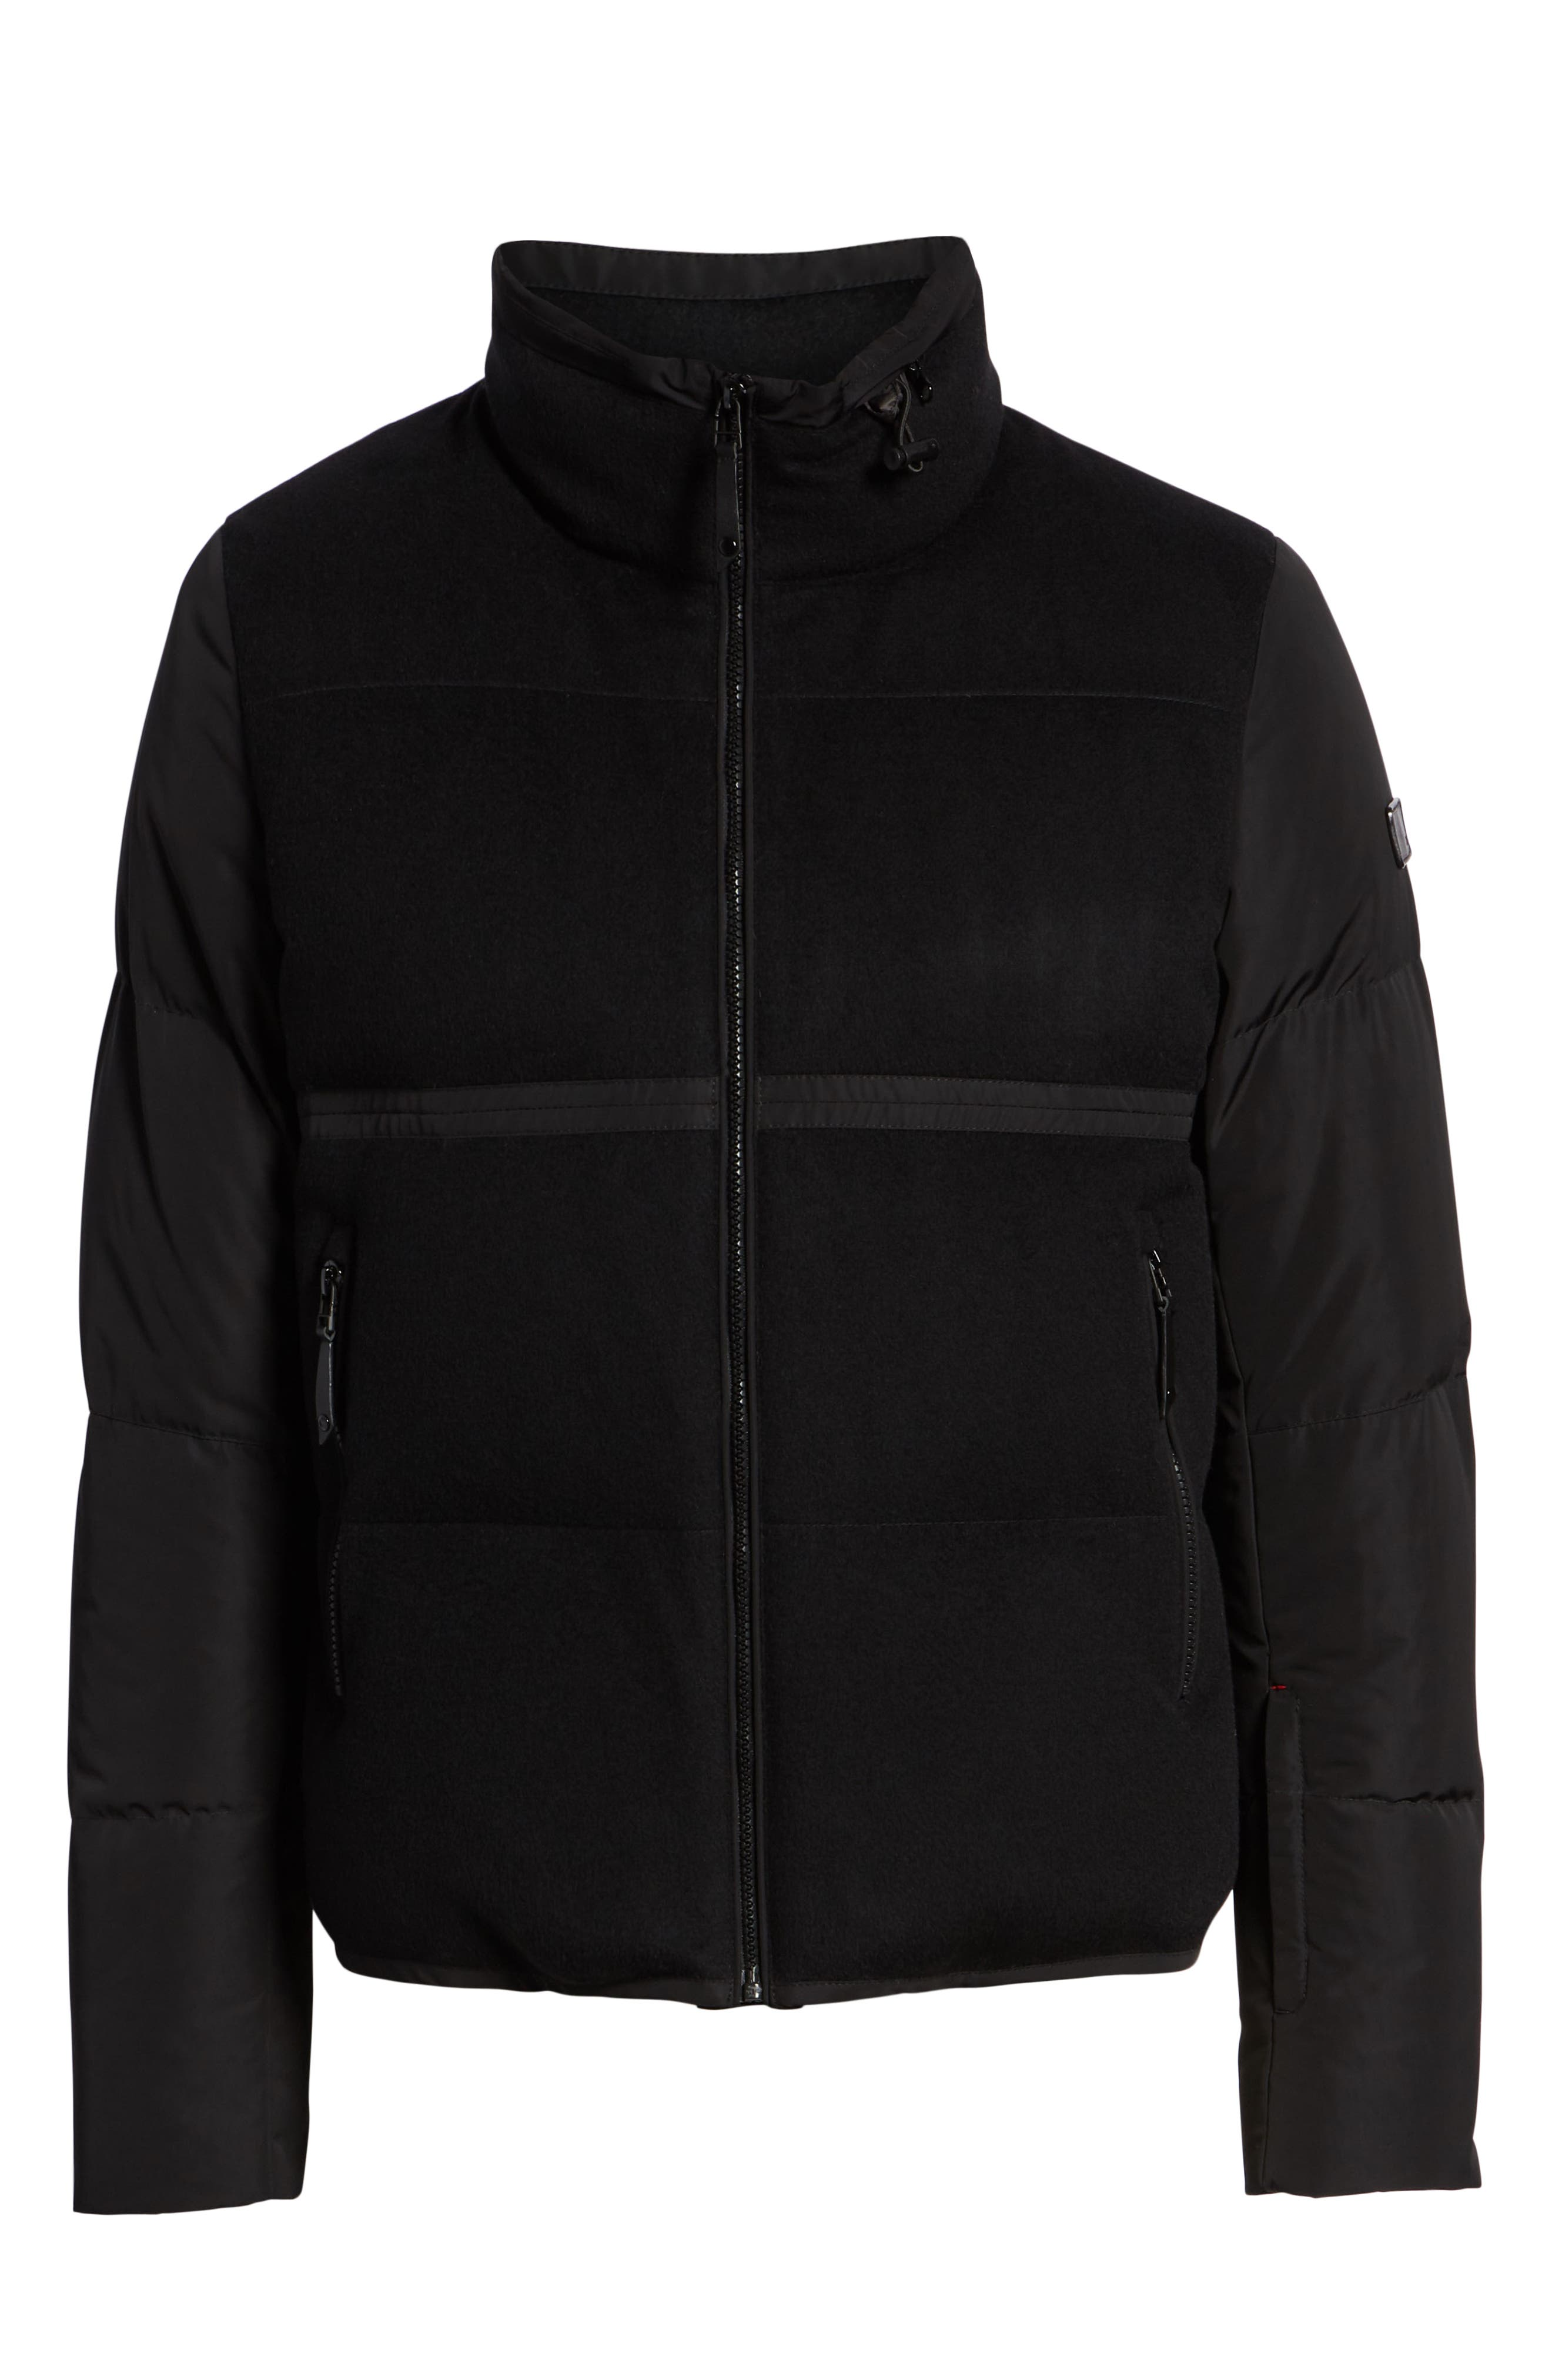 Wool Puffer Jacket,                             Alternate thumbnail 6, color,                             BLACK